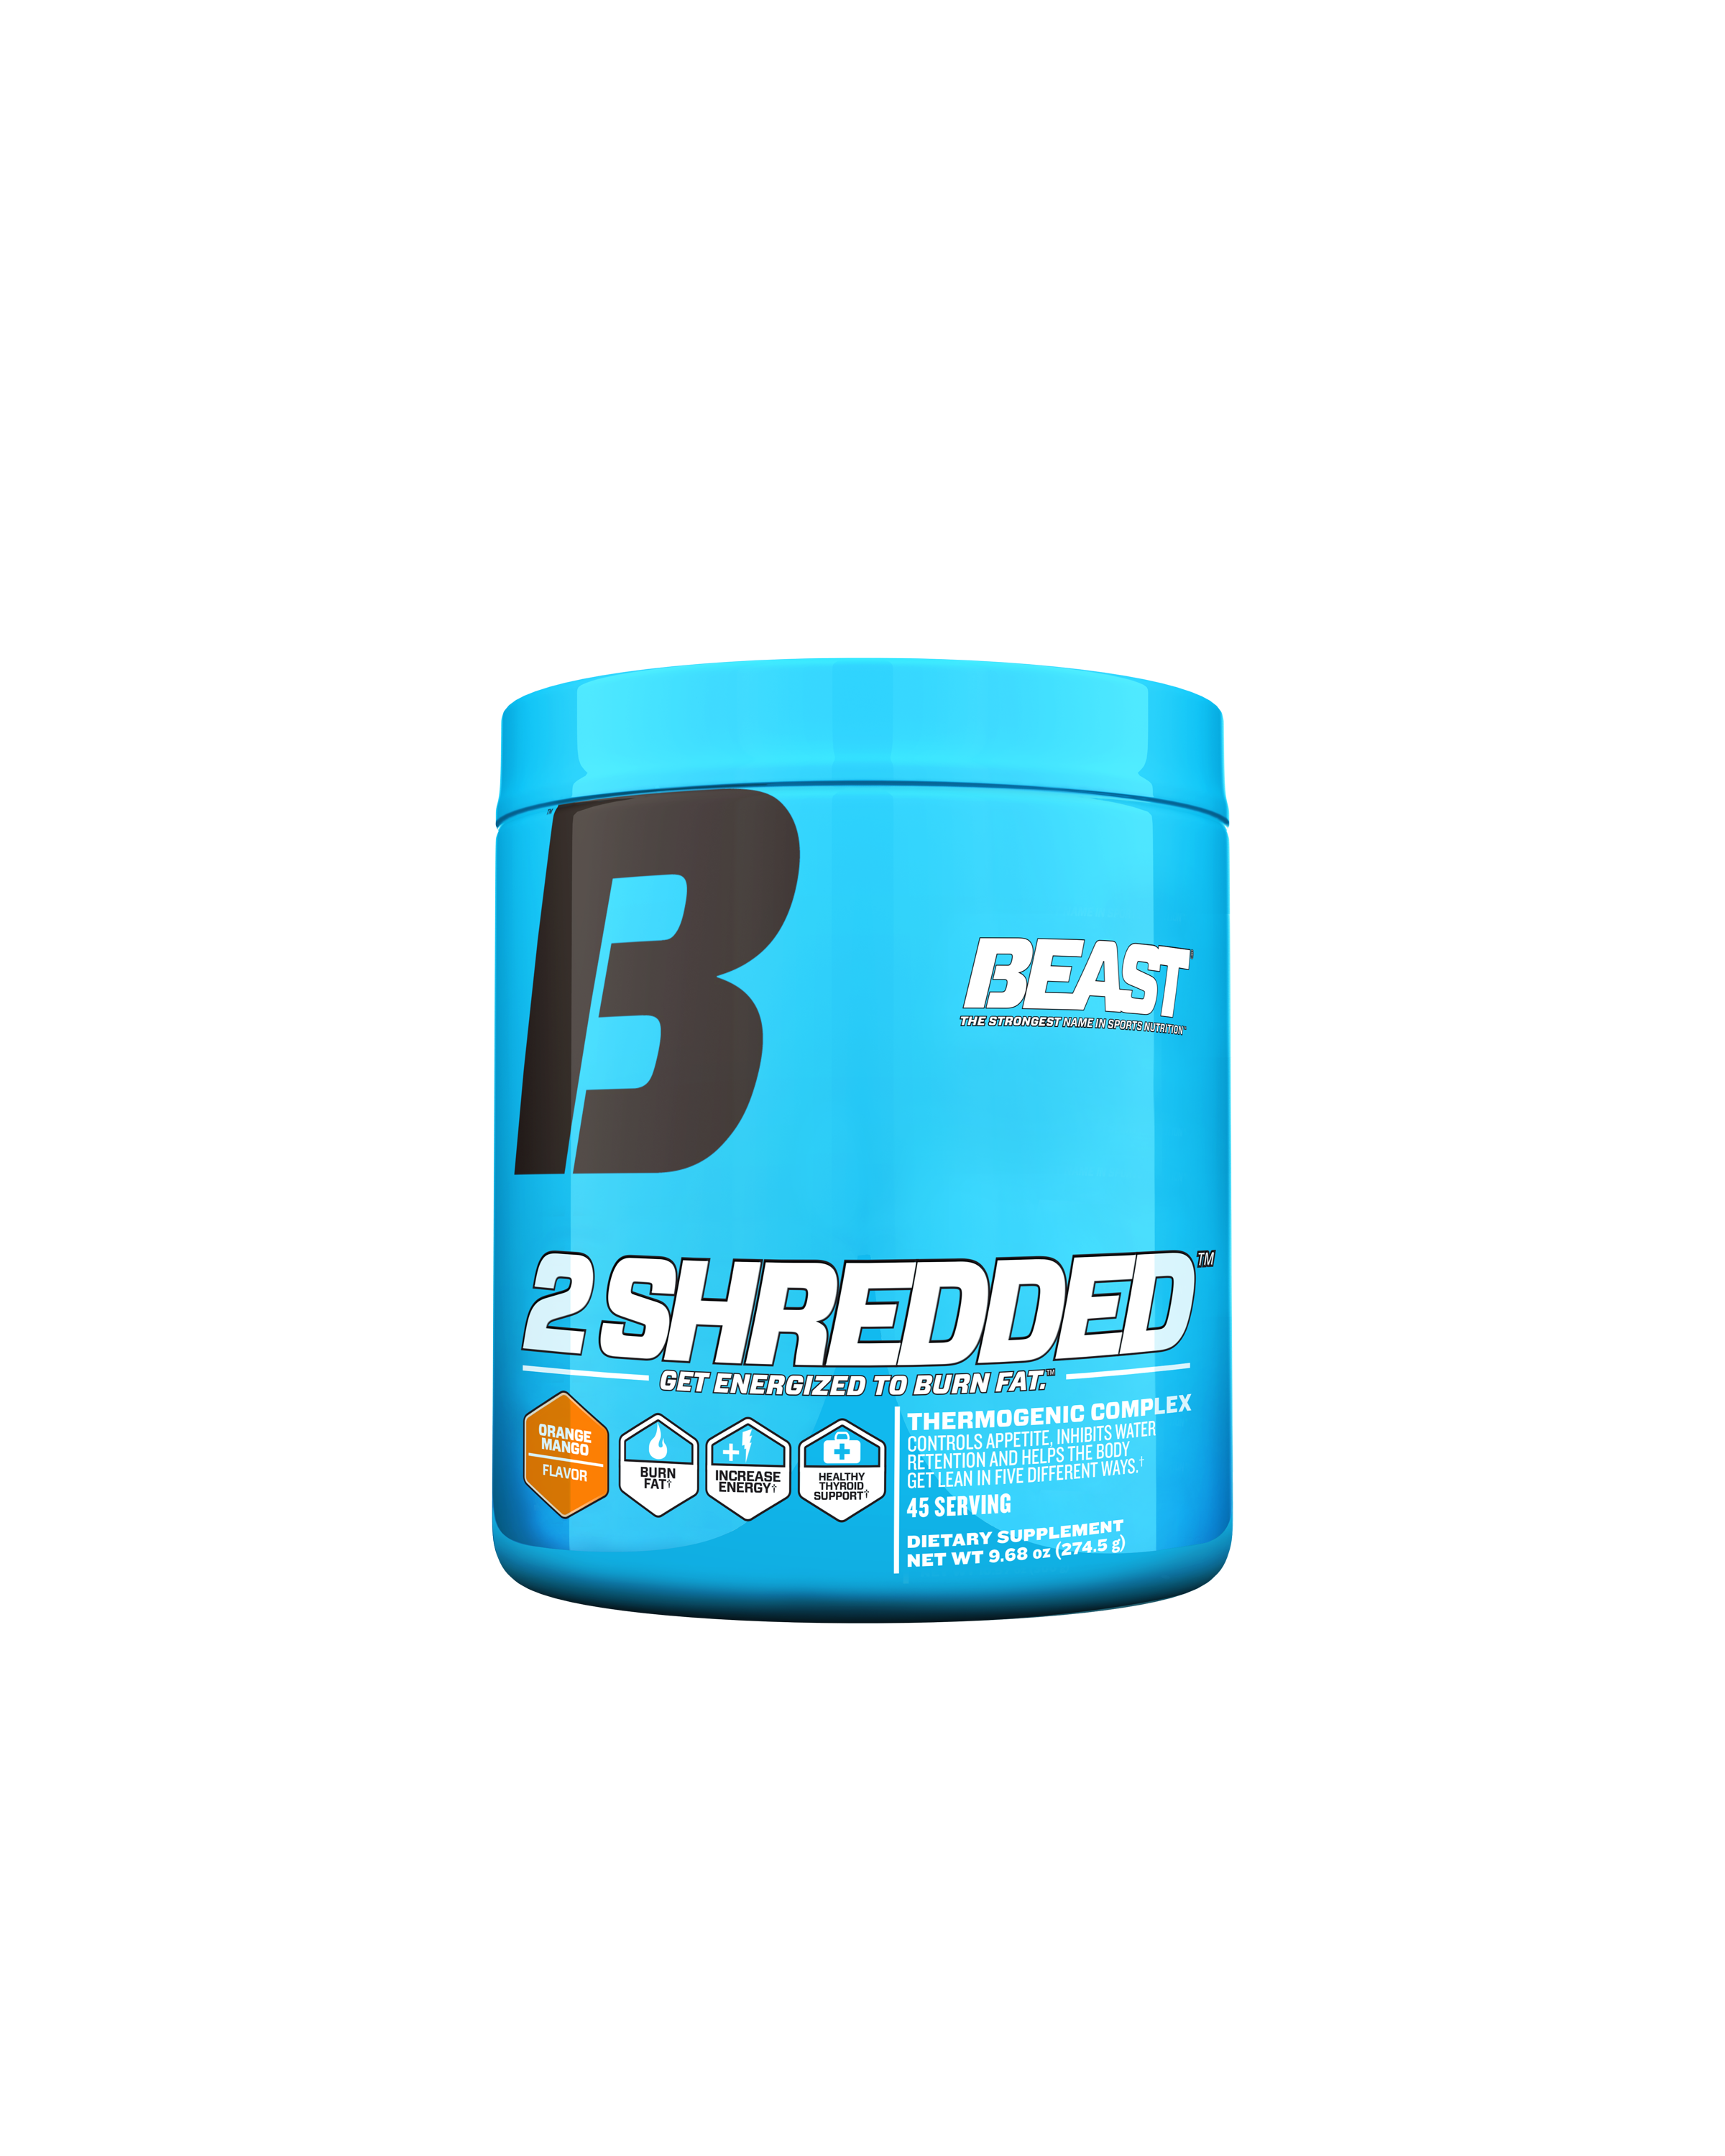 2 SHREDDED – POWDER 45 servings